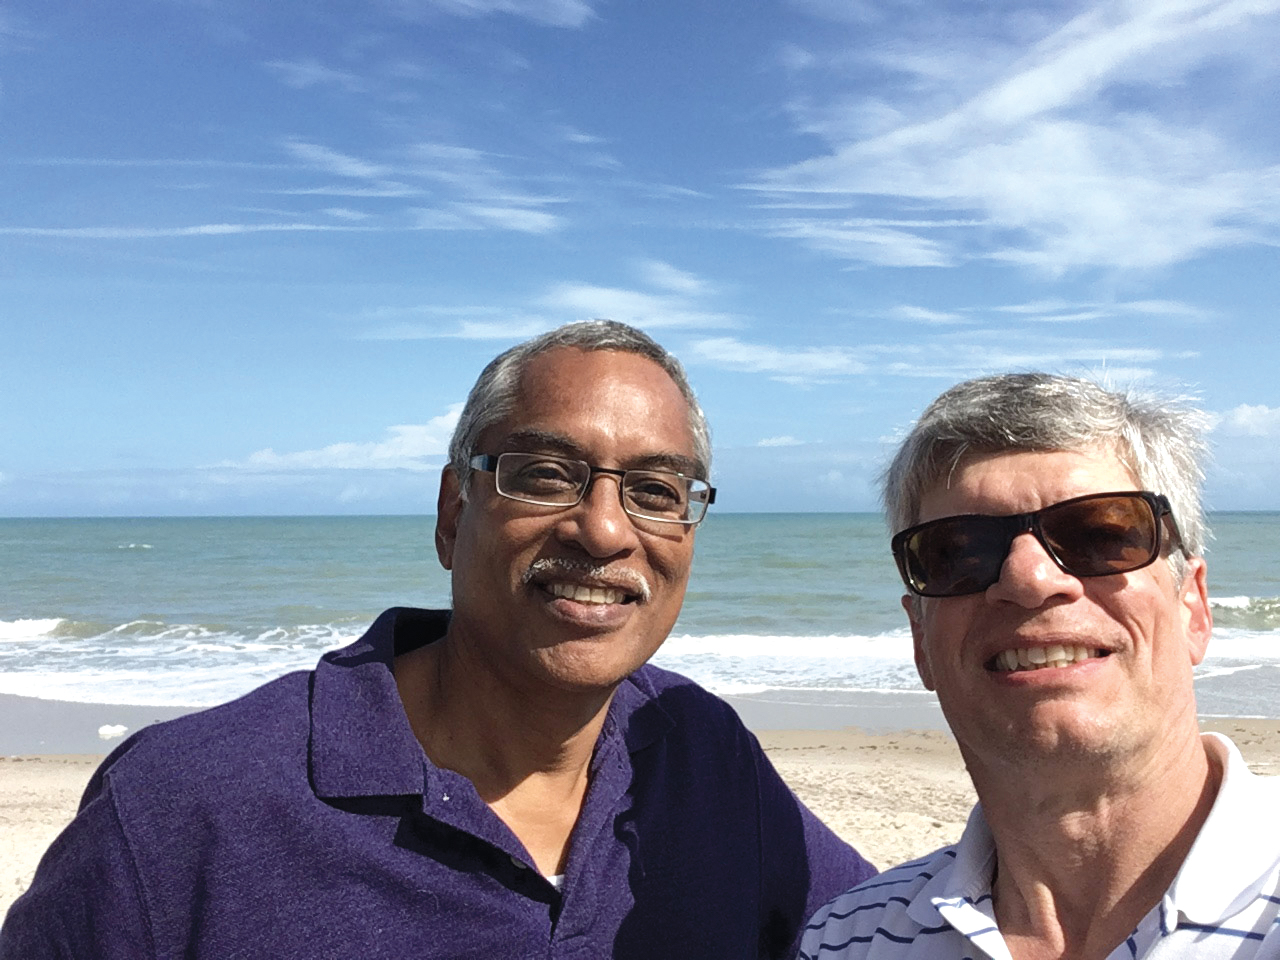 Rick Gomes '75 (r.) trying his best to snap a selfie with formmate Donn Taylor.